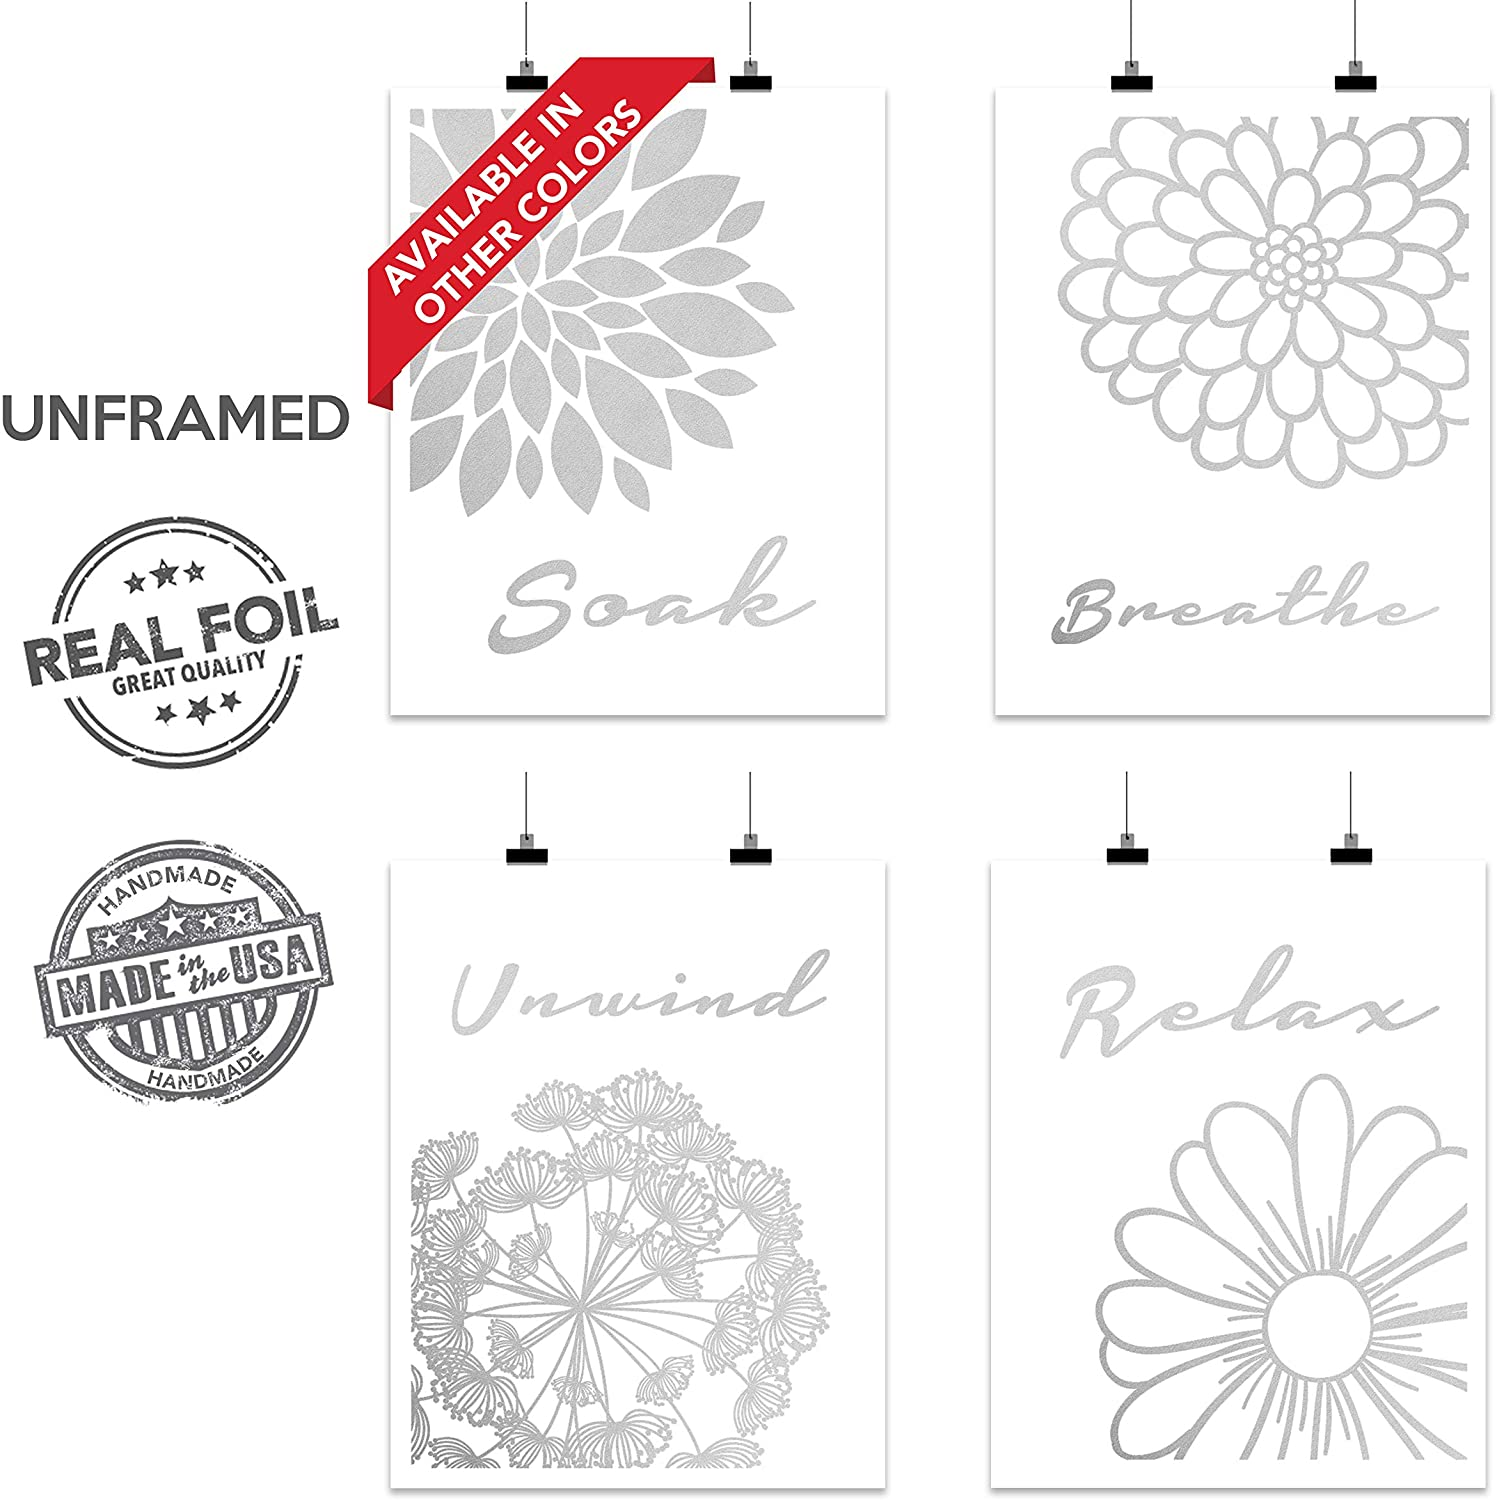 Bathroom Home Wall Art Decor Gift | 4 Abstract Flower Set Foil Relax Soak Breathe Unwind Relax | Motivational and Inspirational Home Prints and Posters for Restroom Toilet | UNFRAMED (8 x 10, Silver)